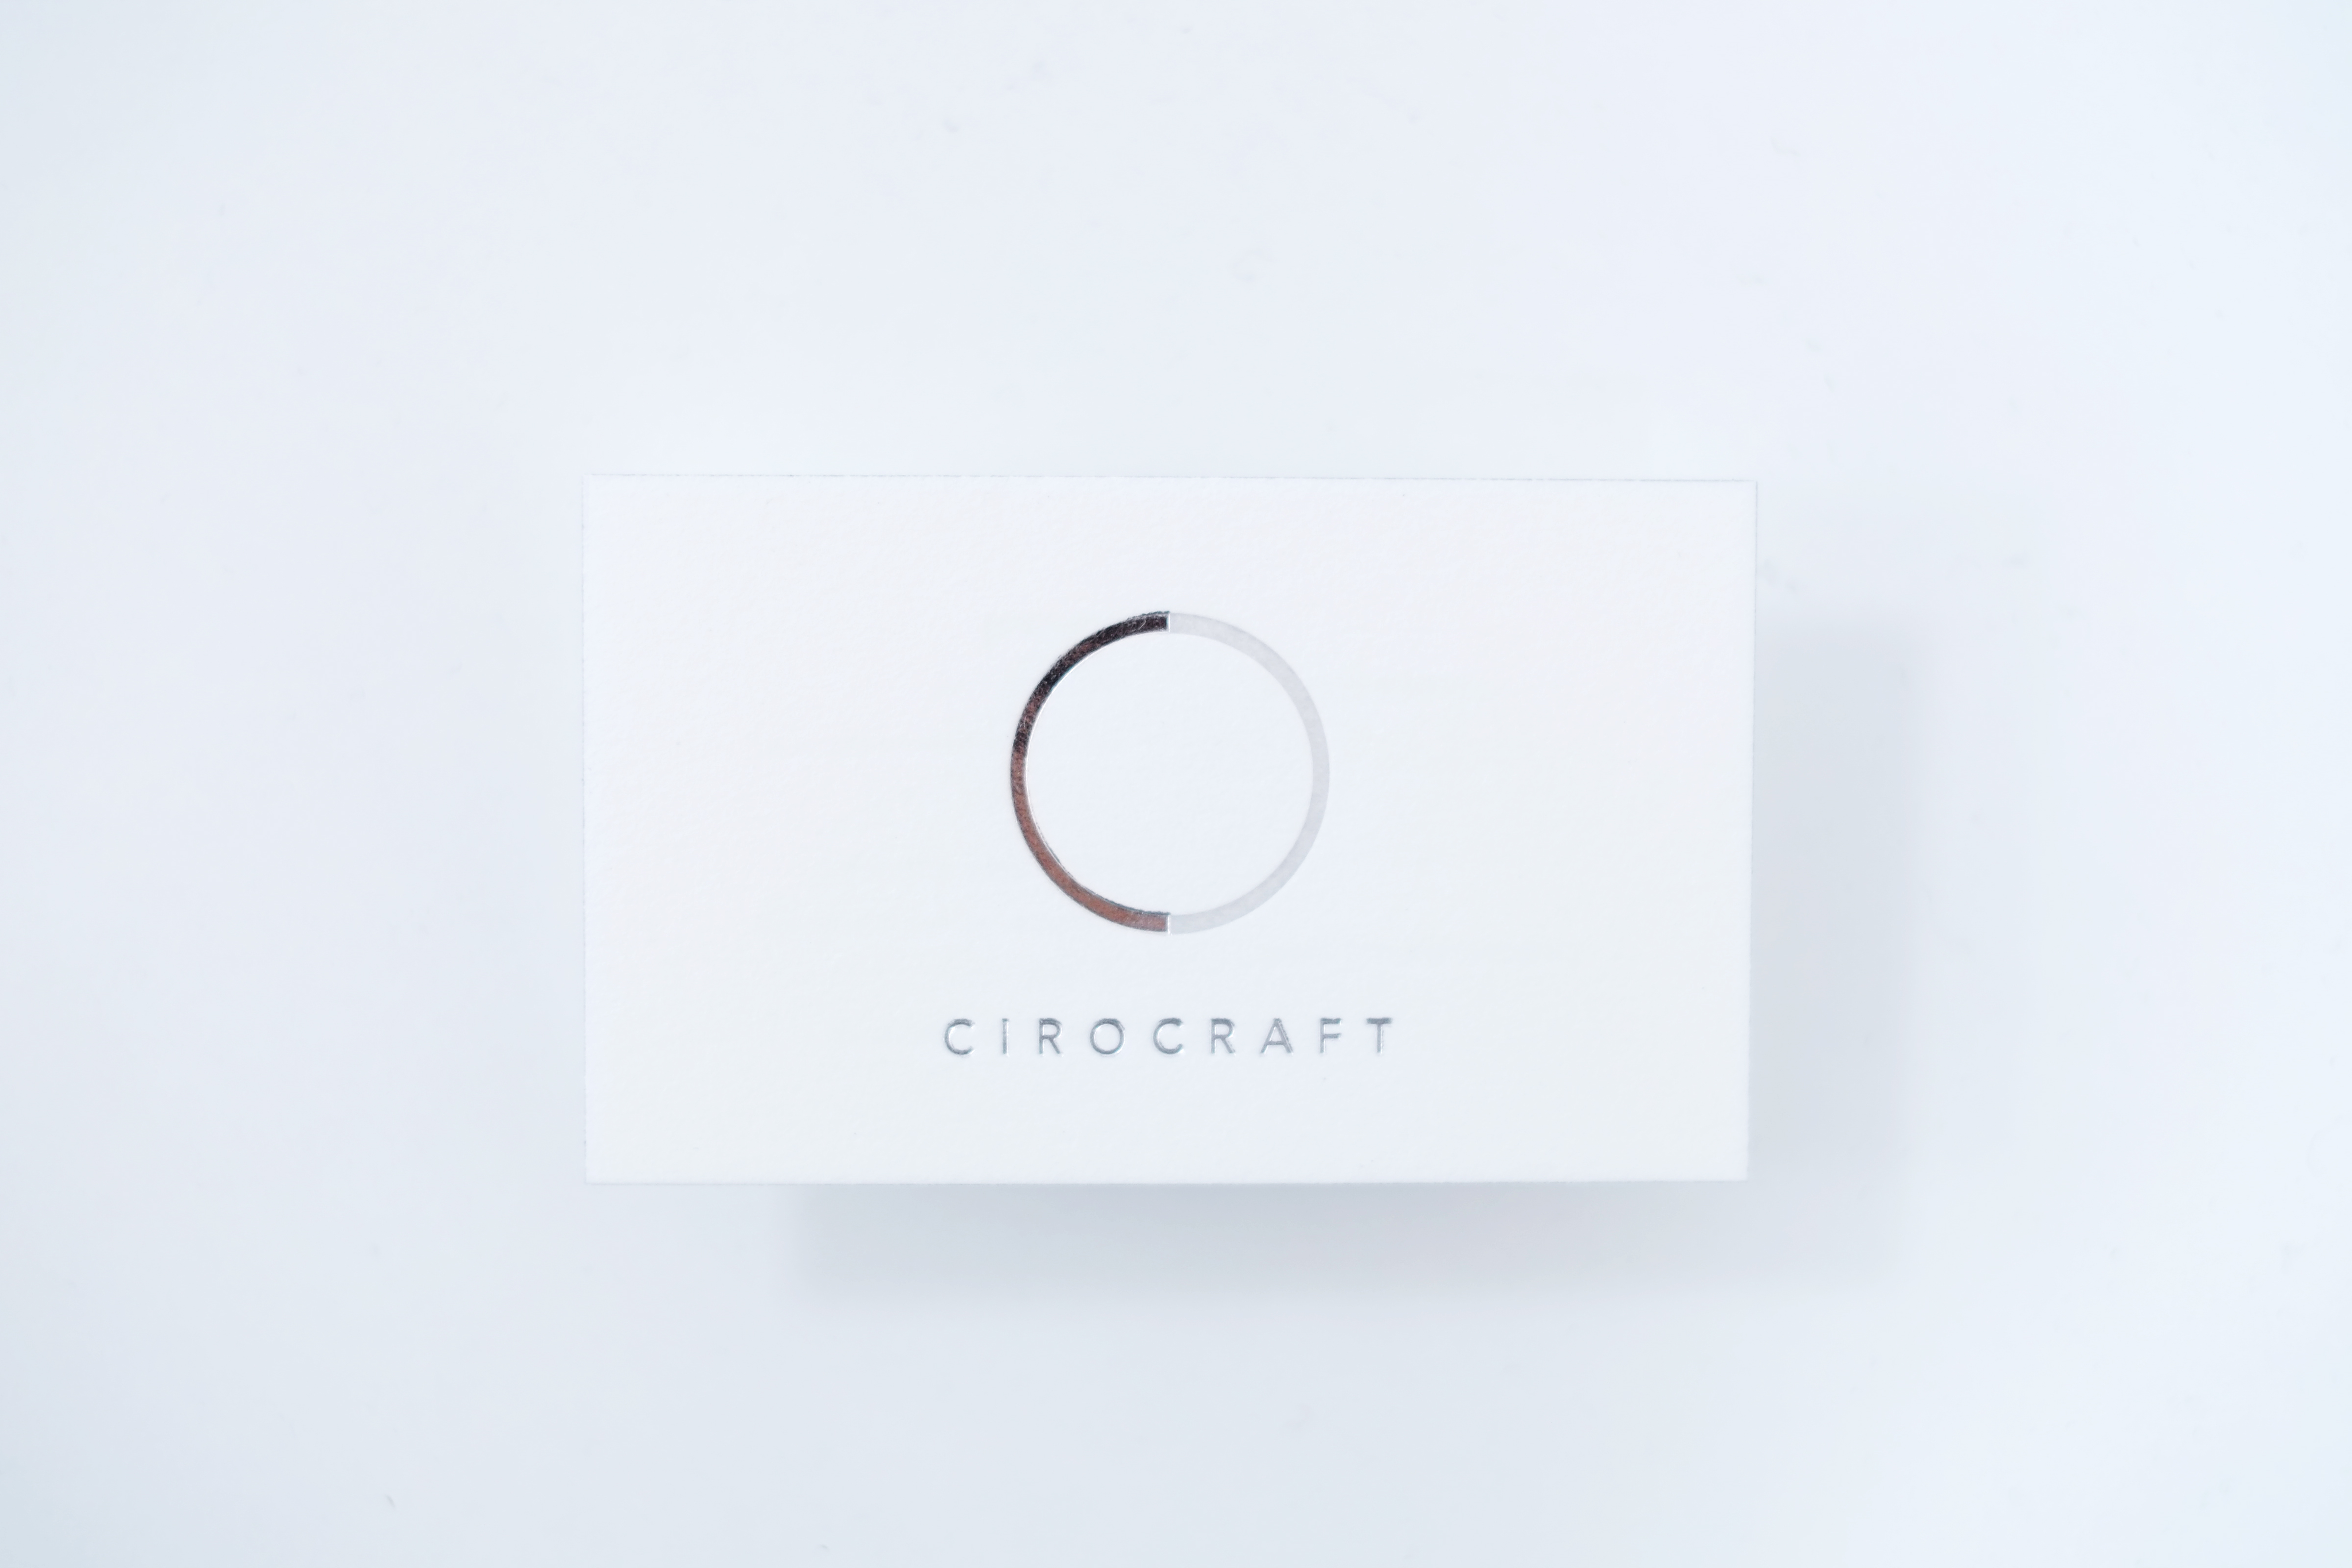 CIROCRAFT Inc. Business Card